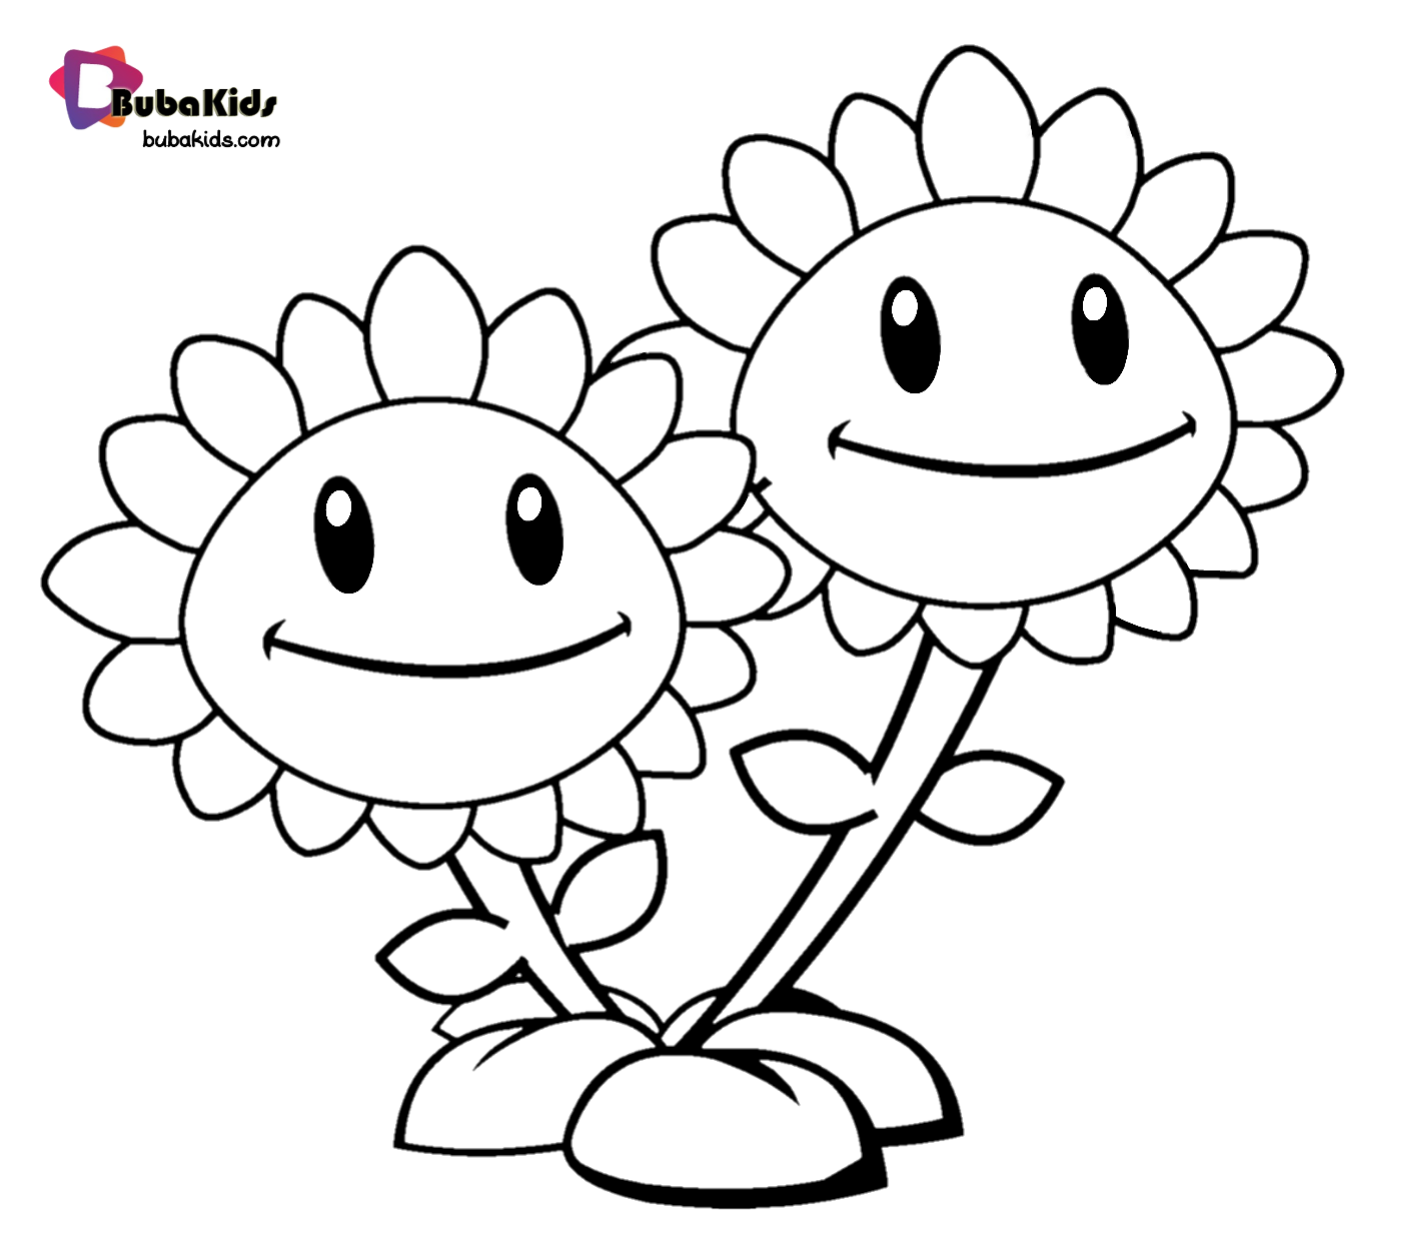 Tcute Sunflower Coloring Page For Toddlers Free And Printable Activity Cute For Su Sunflower Coloring Pages Plants Vs Zombies Birthday Party Plant Zombie